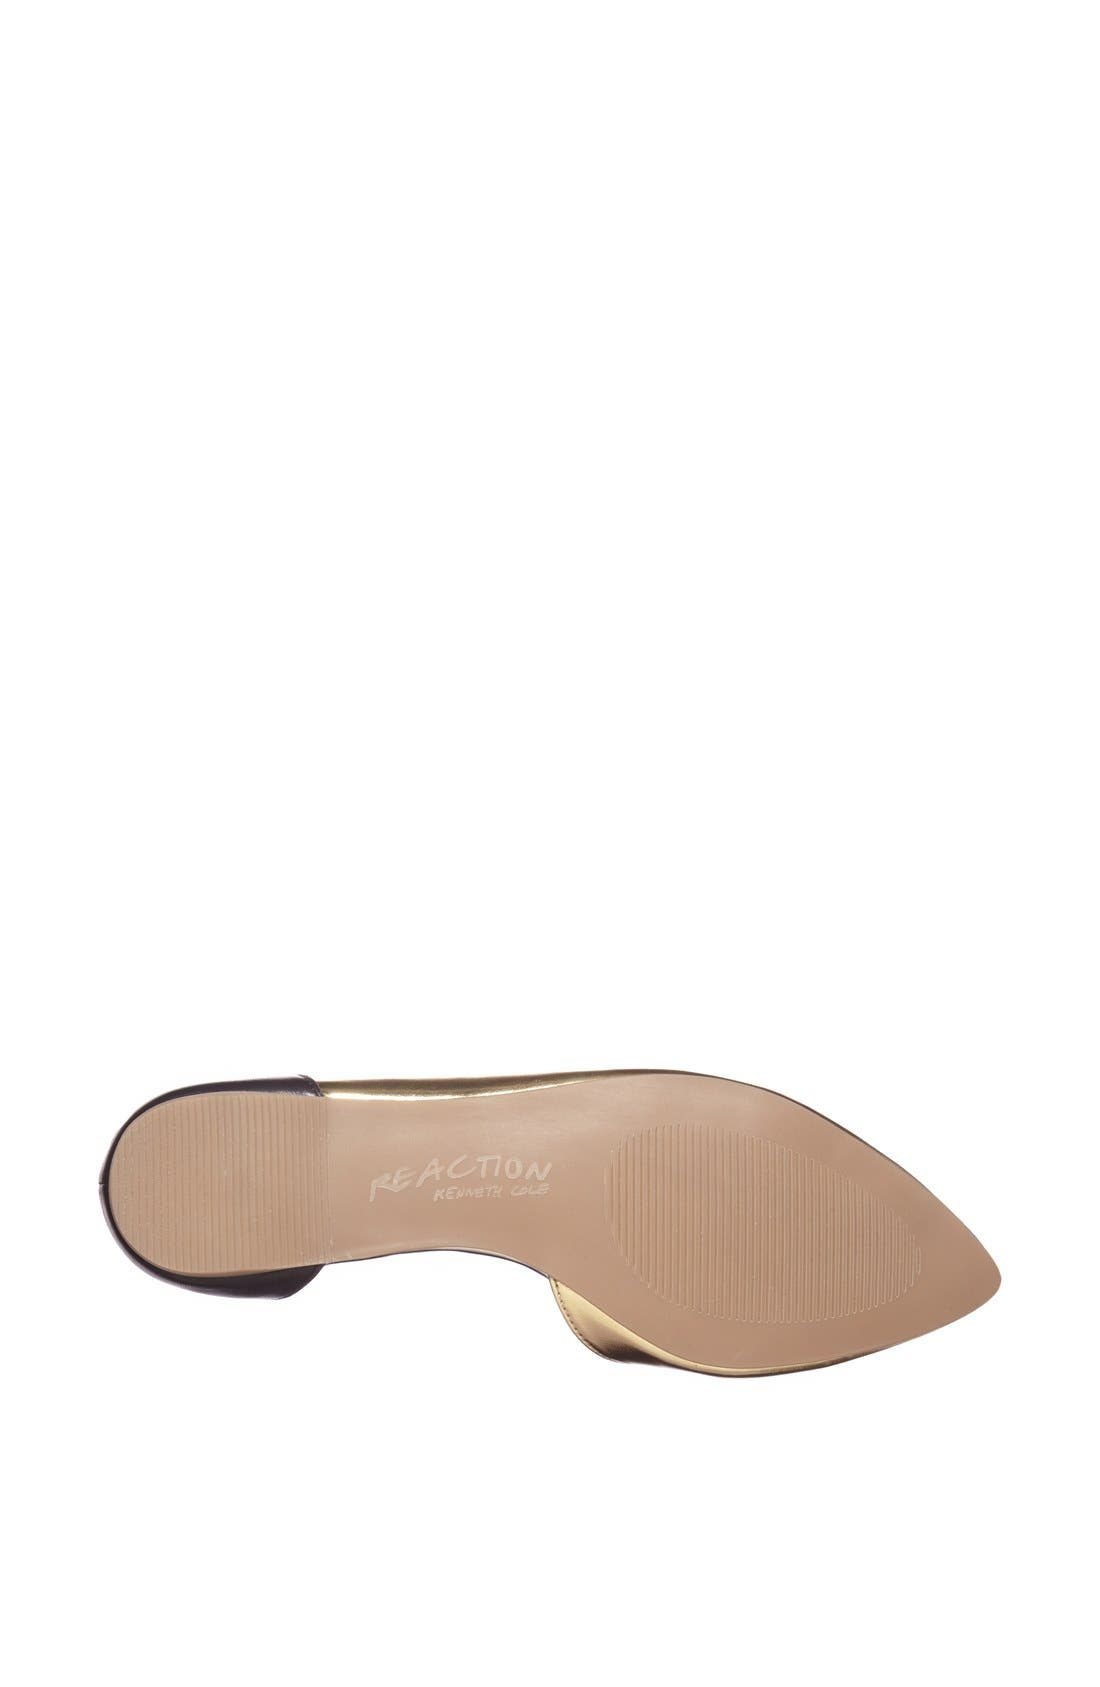 Alternate Image 4  - Kenneth Cole Reaction 'Pose Off 2' Cuff Ankle Strap Half d'Orsay Sandal